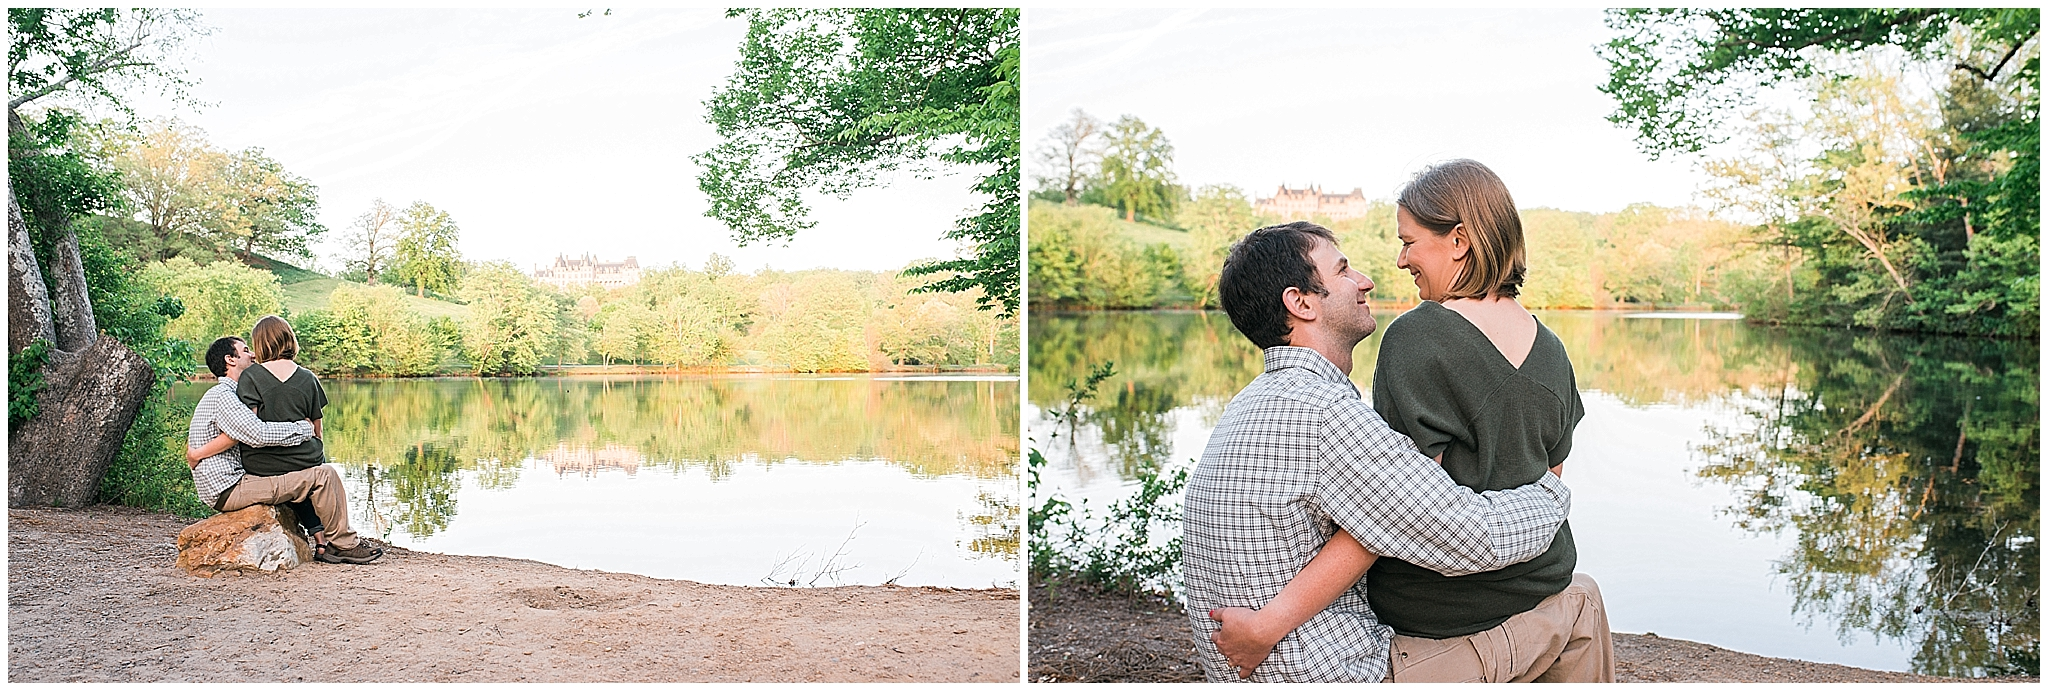 Biltmore_engagement_Asheville_photographer_wedding_14.jpg